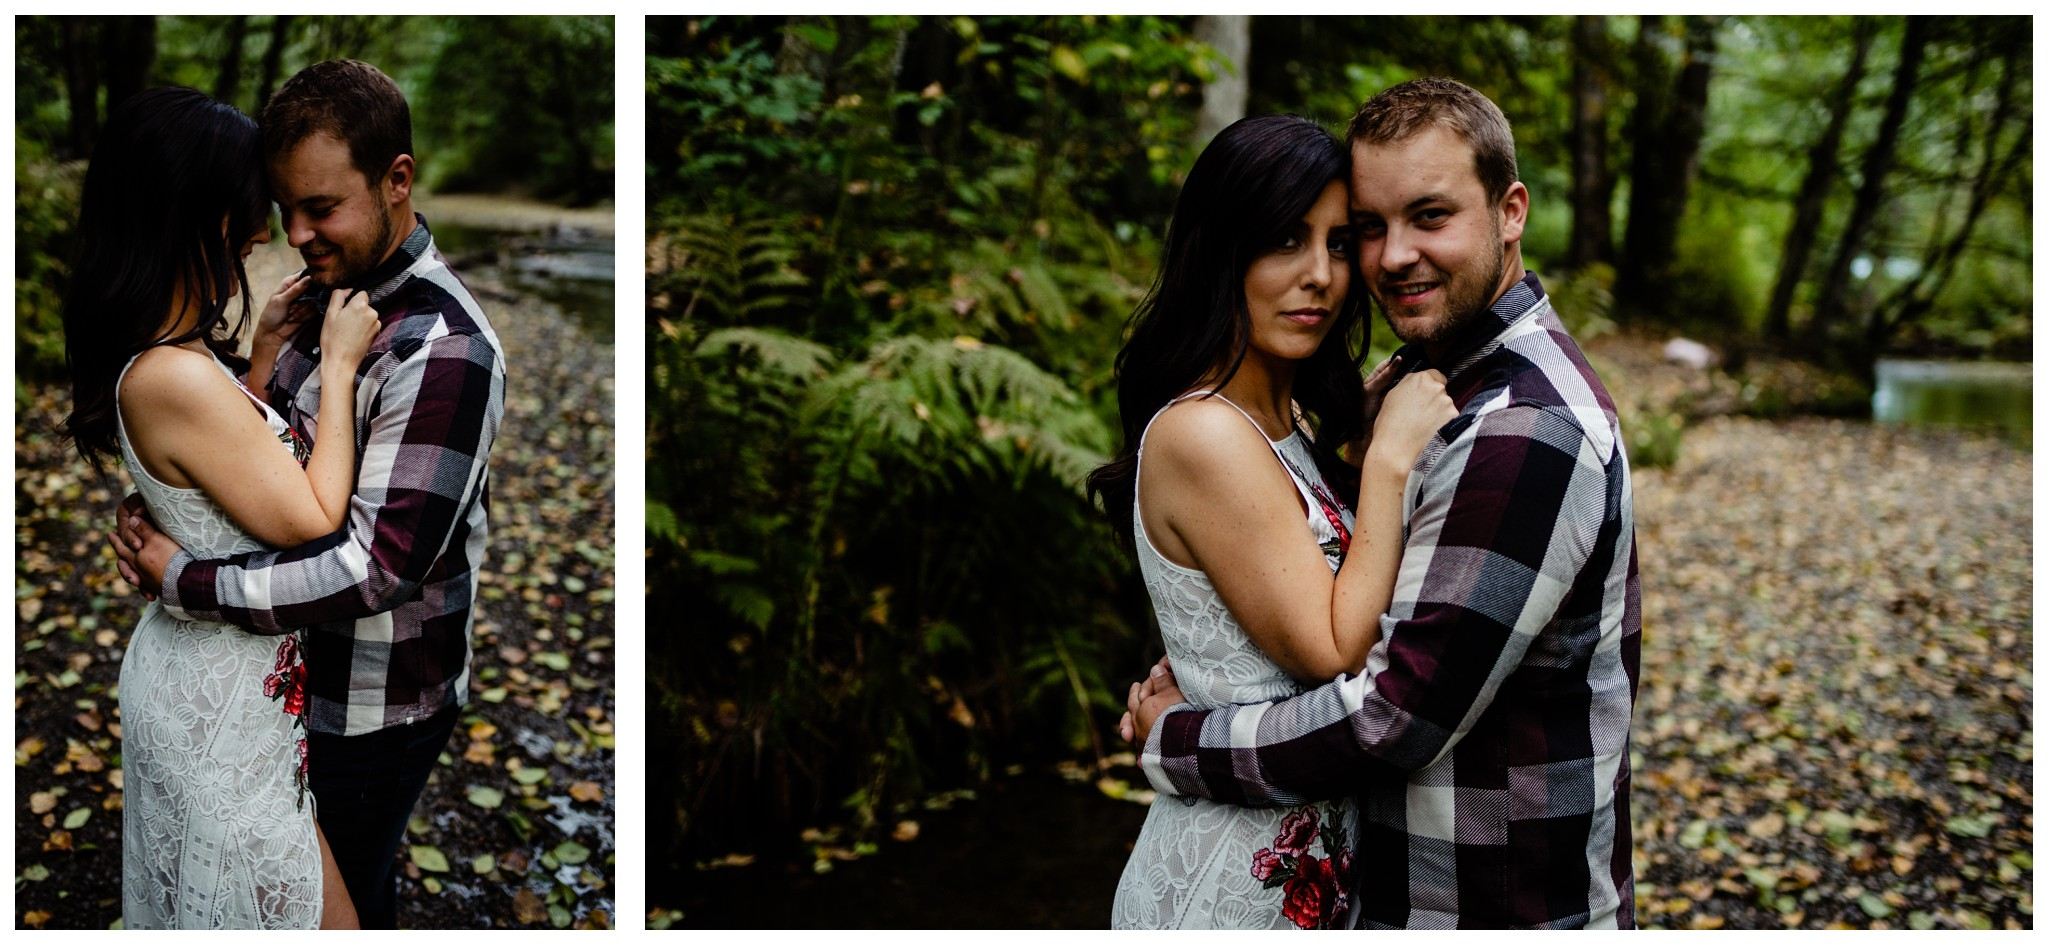 Williams Park Aldergrove Engagement Photographer Moody Fall Couple River Water Romantic Pose Yellow Leaves White Dress Dark_0010.jpg